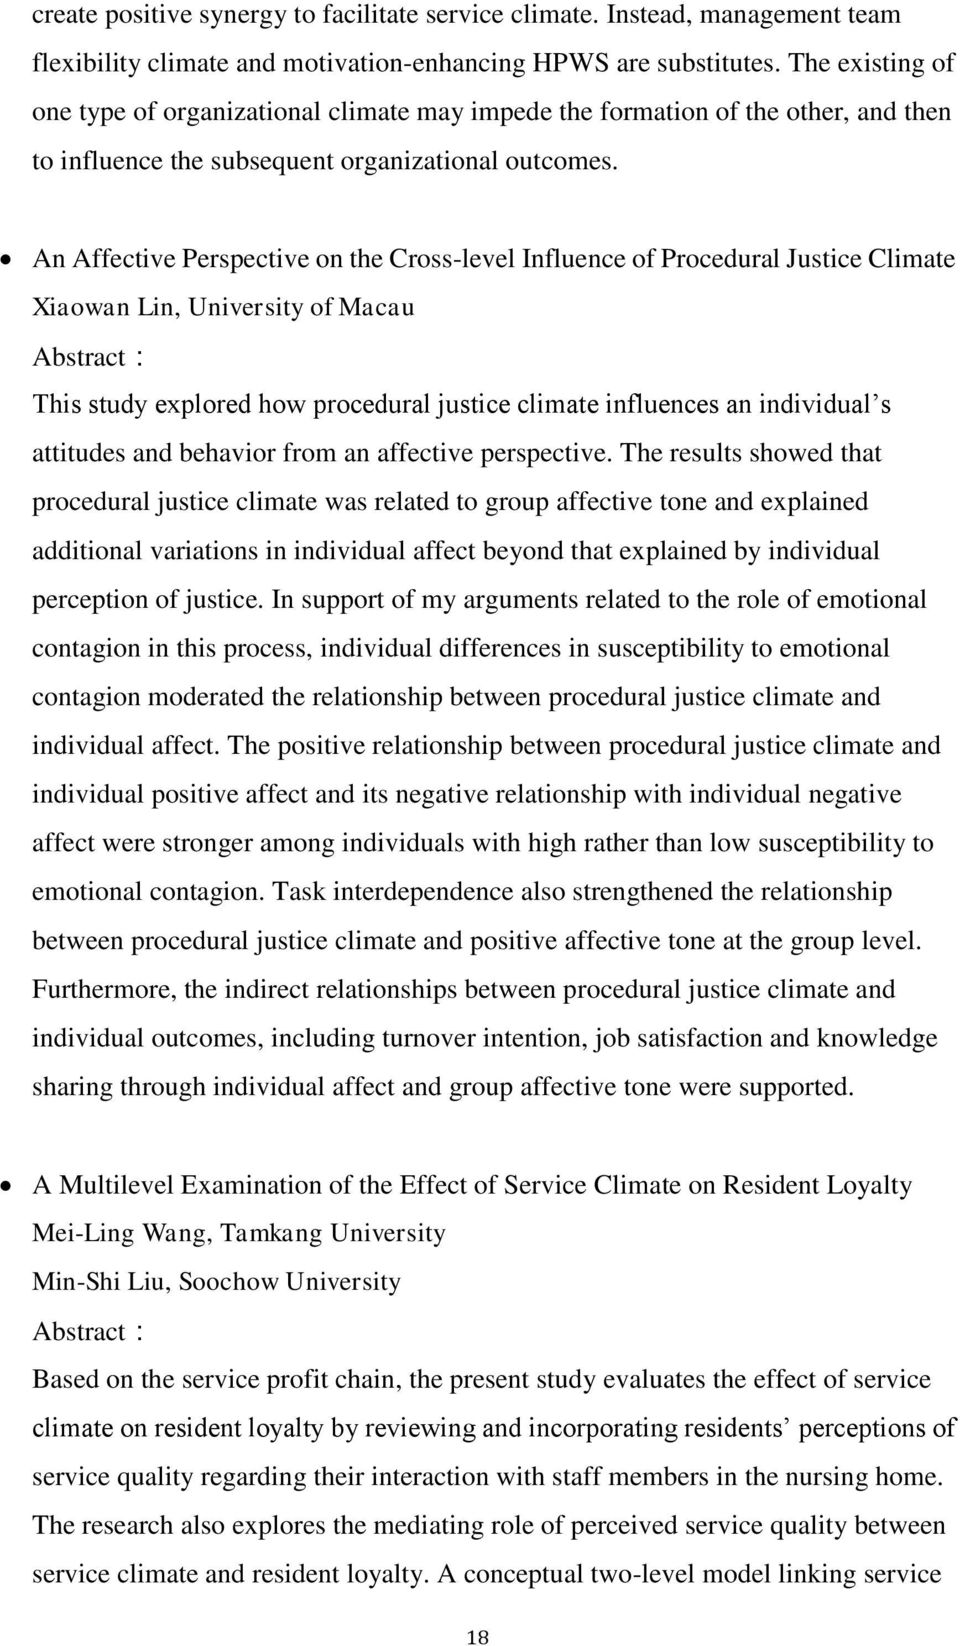 An Affective Perspective on the Cross-level Influence of Procedural Justice Climate Xiaowan Lin, University of Macau This study explored how procedural justice climate influences an individual s